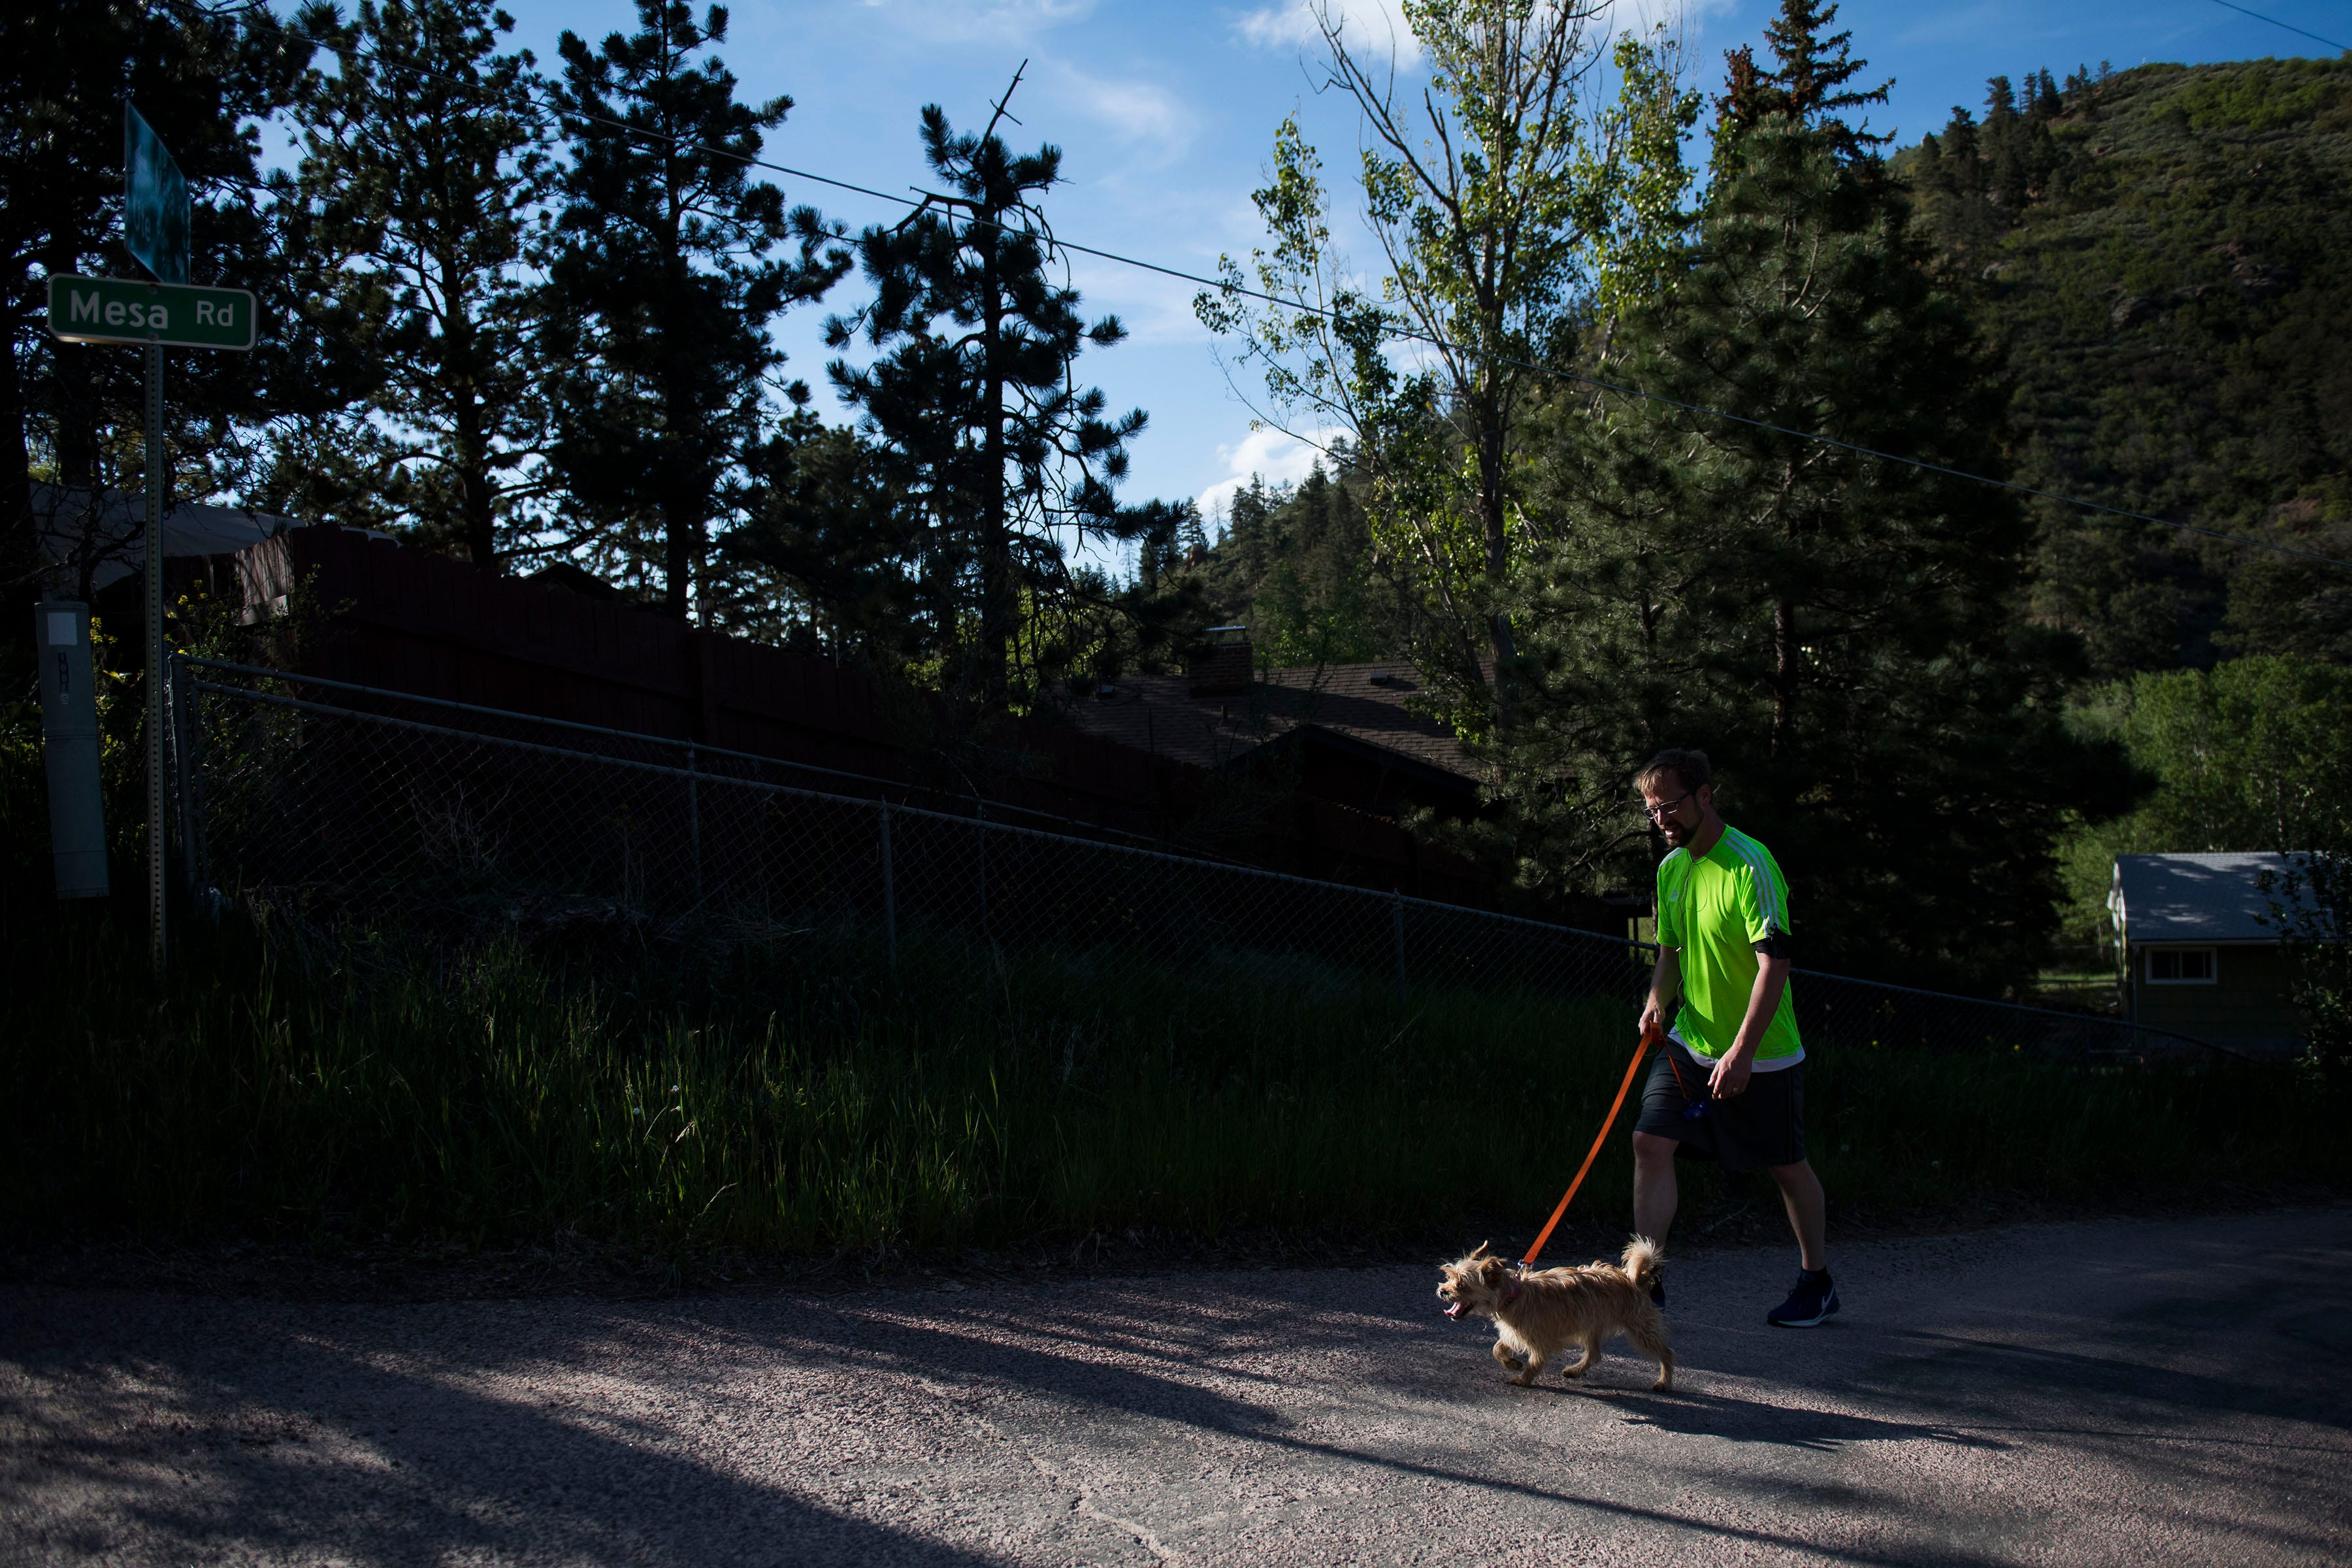 Nine-year resident Jamie Berry takes his dog Goldie for a walk up the steep hills in his neighborhood on Wednesday, June 12, 2019, in Cascade, Colo.